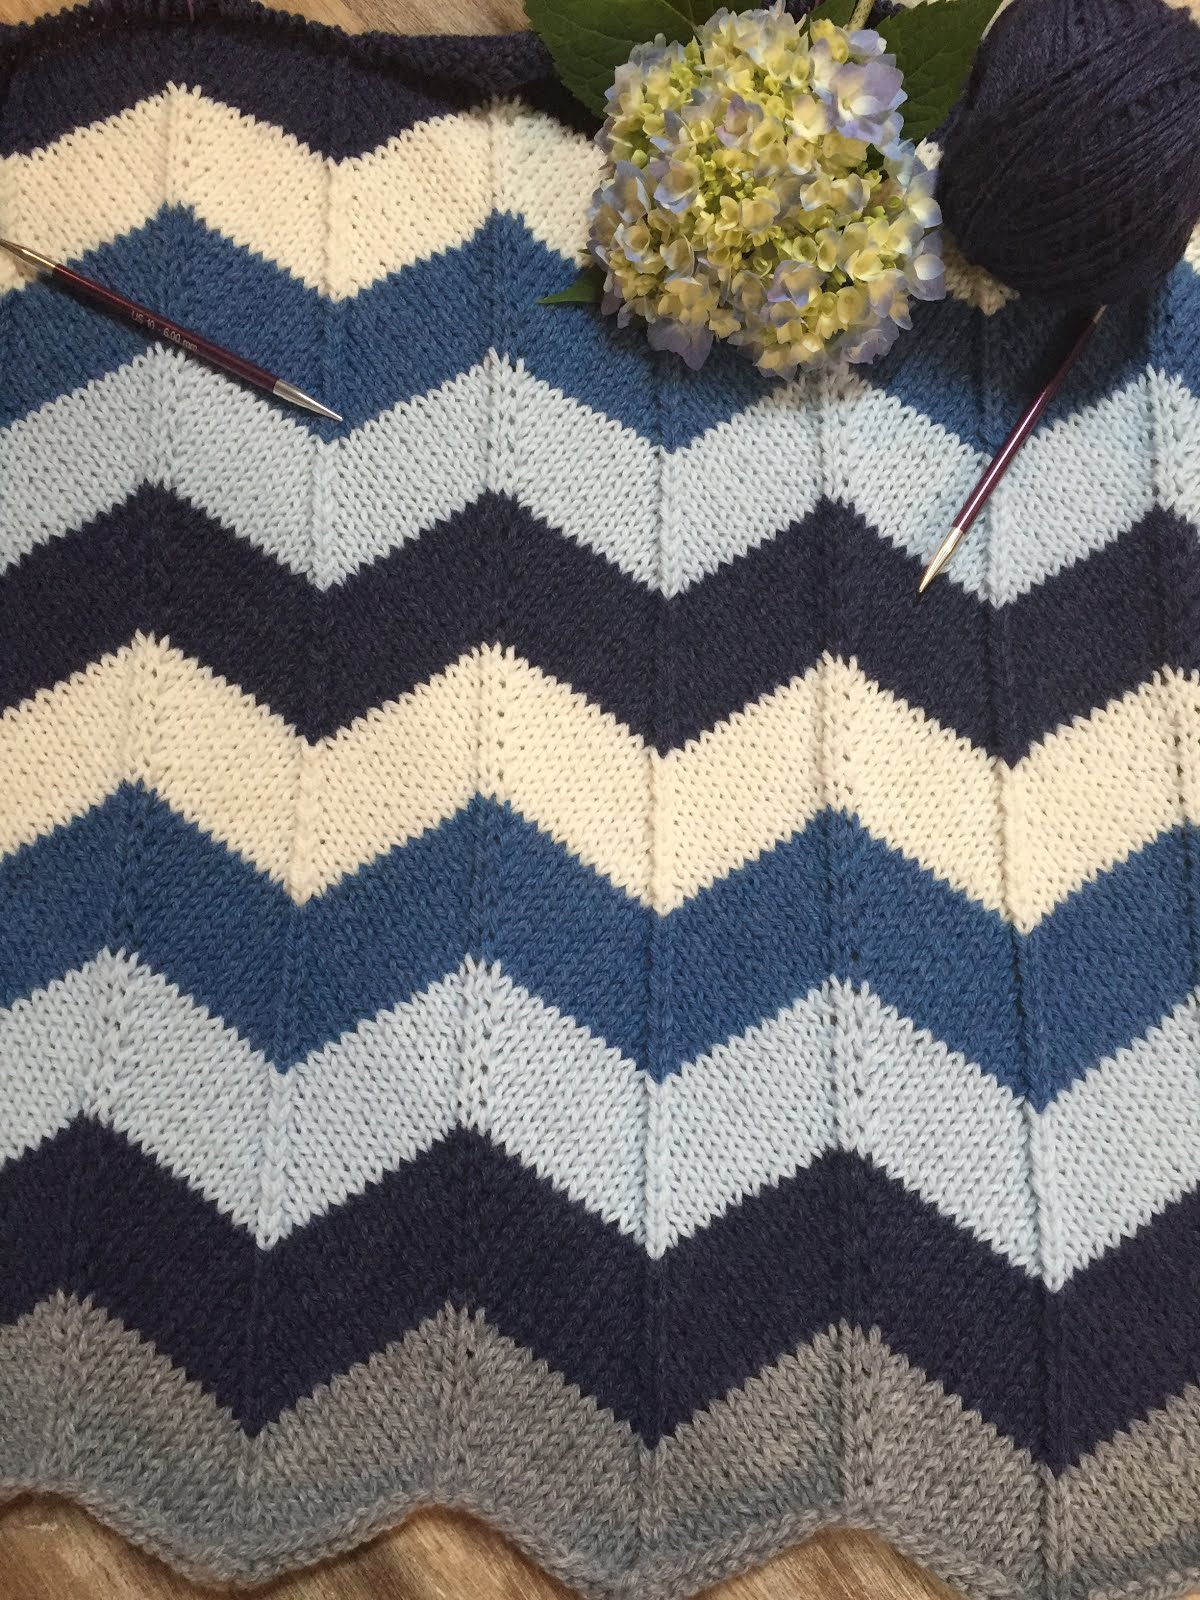 Chevron Baby Blanket I Started This Blanket On June 6Th